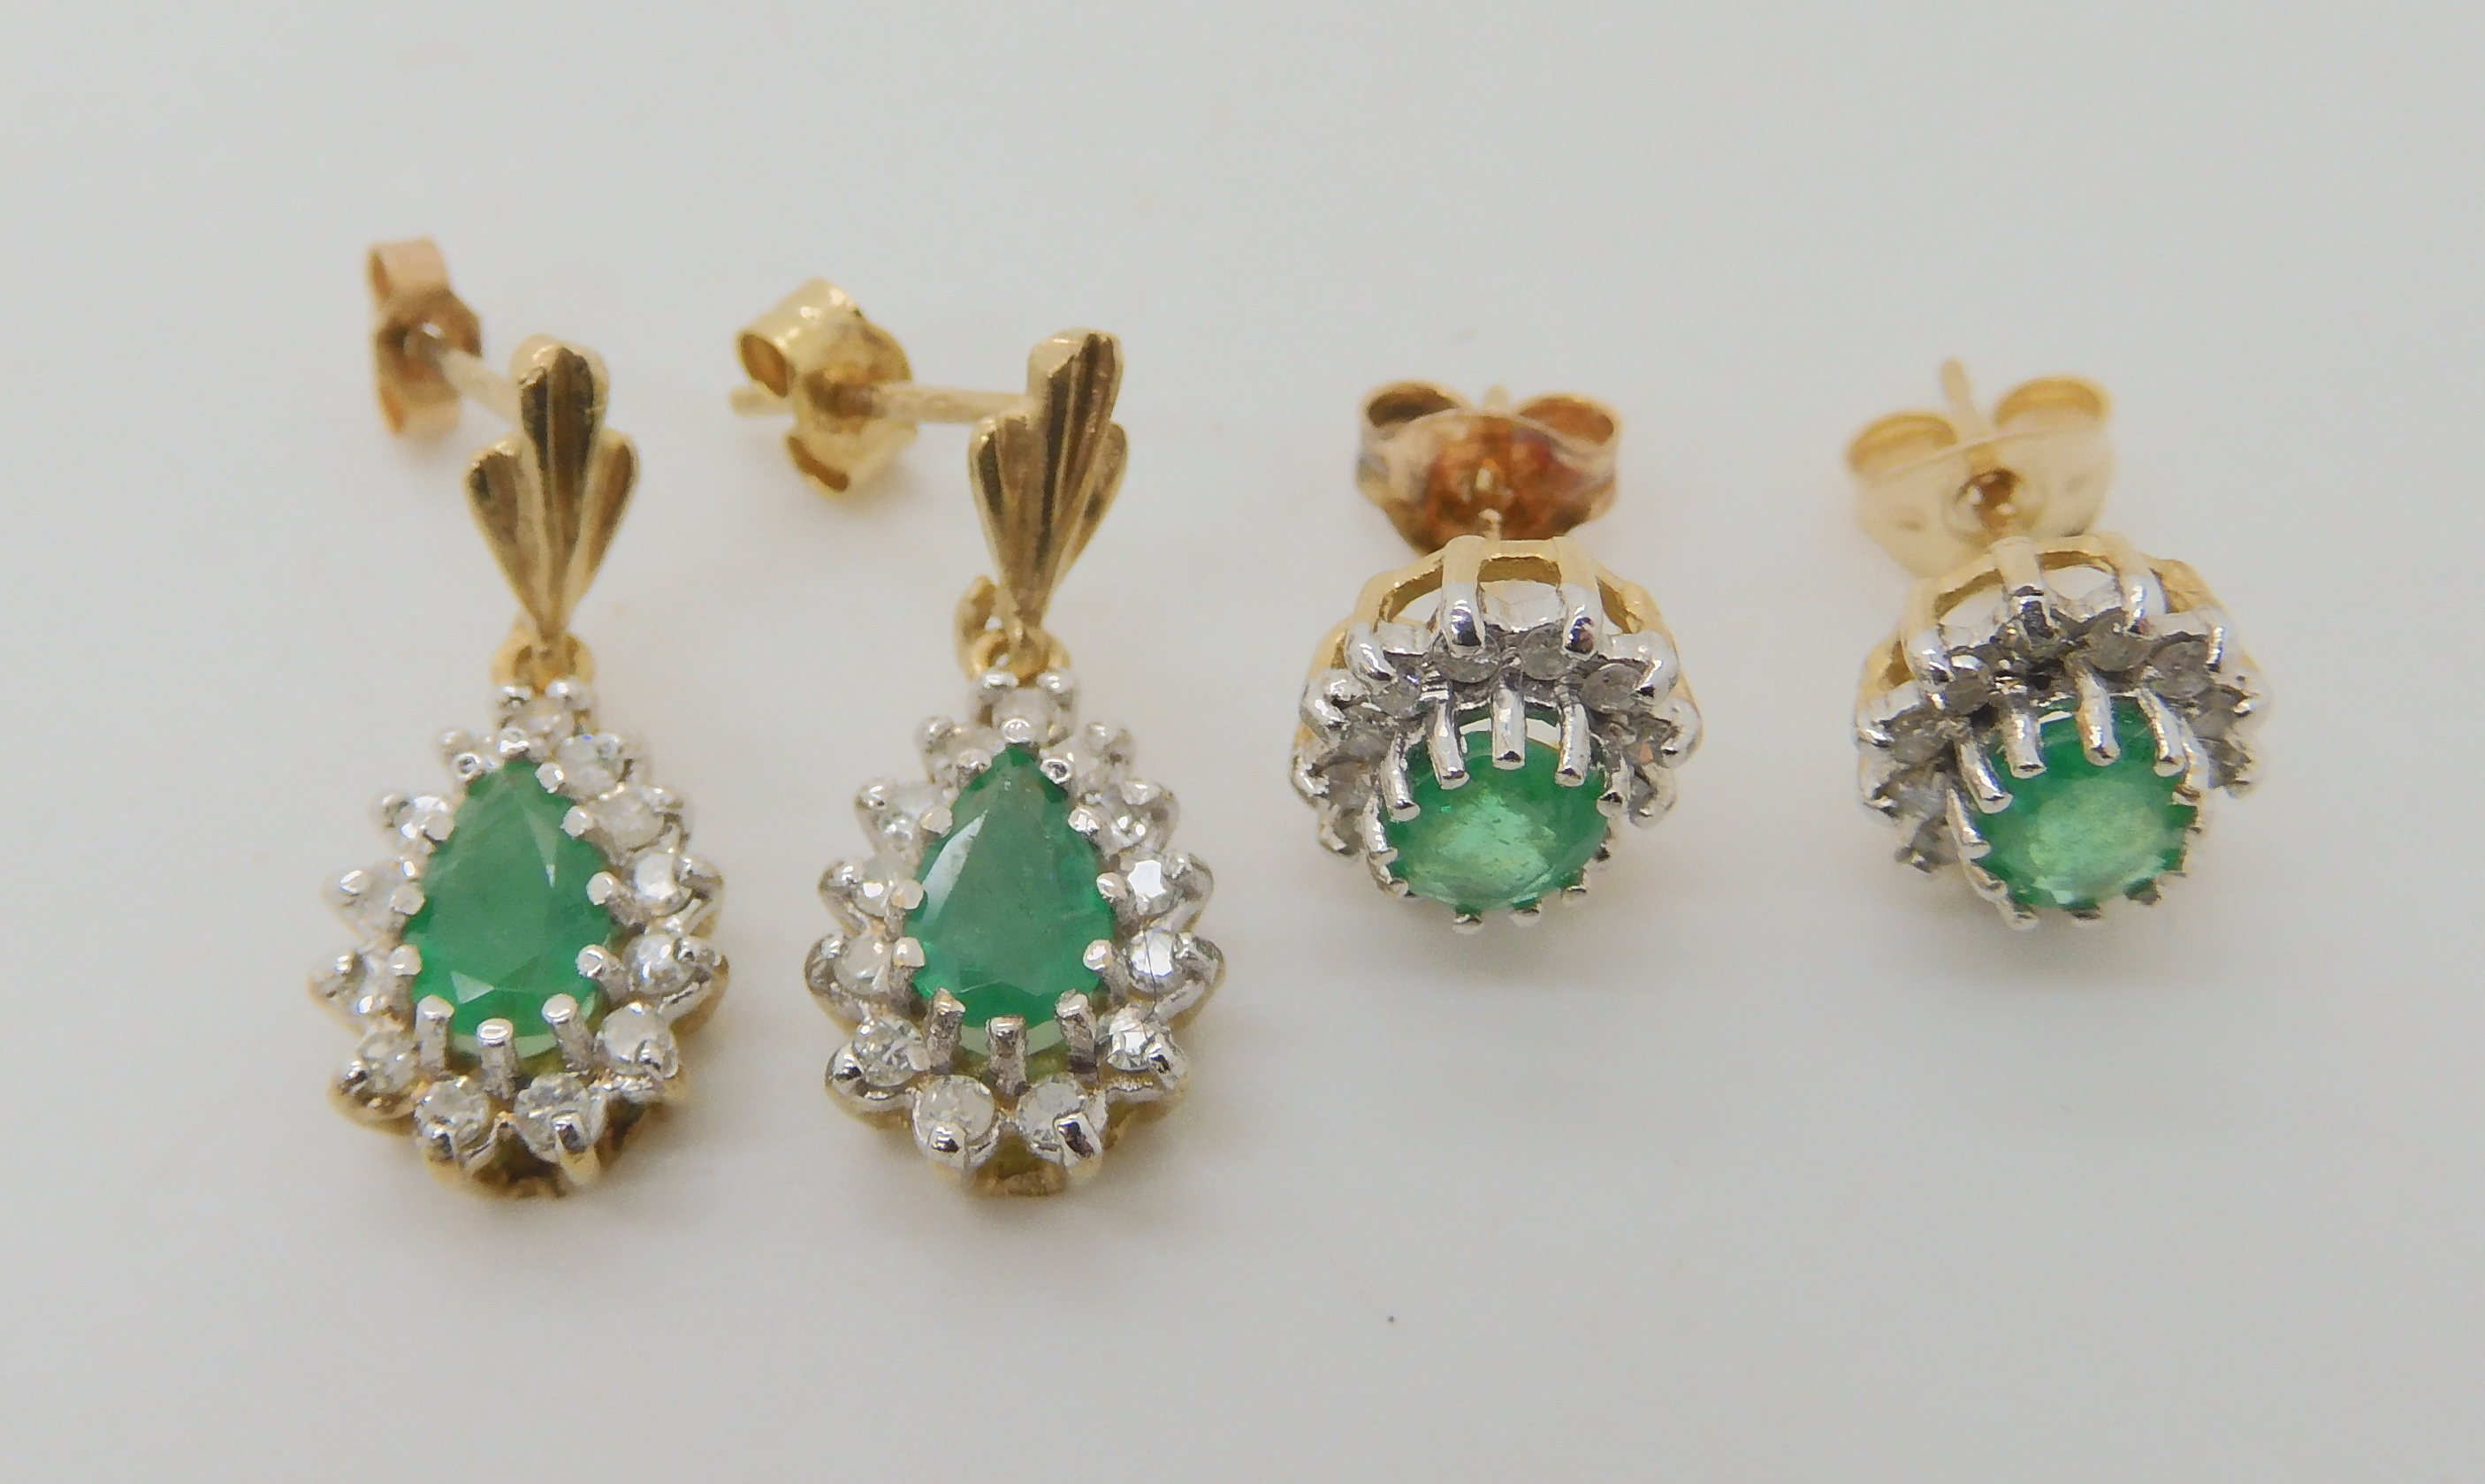 TWO PAIRS OF EMERALD AND DIAMOND EARRINGS pear shaped emerald and diamond drop earrings, set with